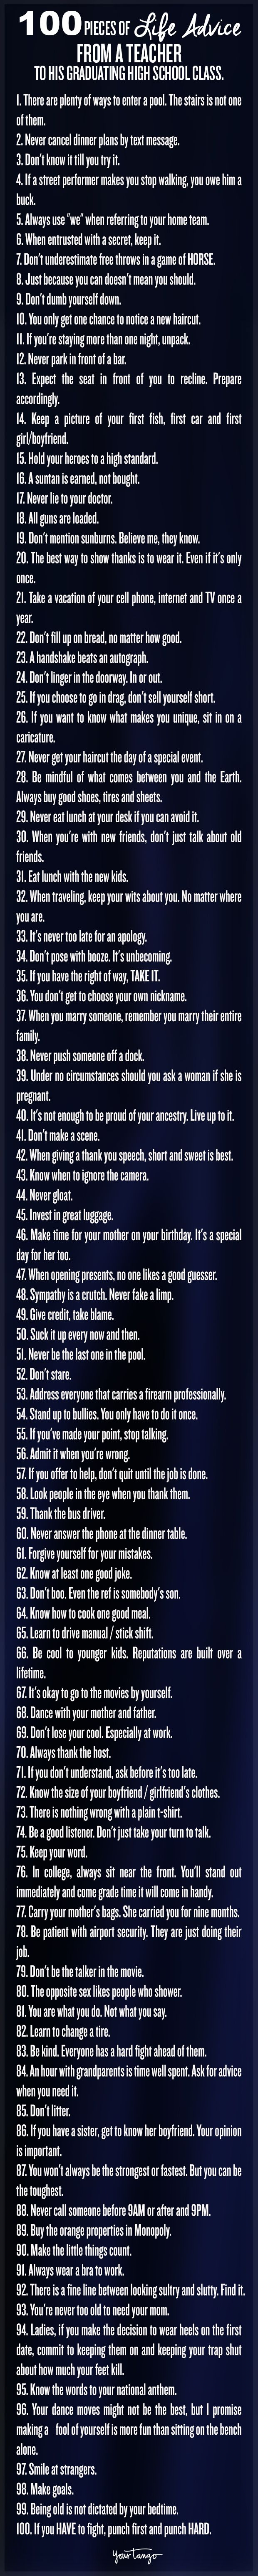 100 Pieces Of Life Advice Everyone Needs To Know (no Matter Your Age)